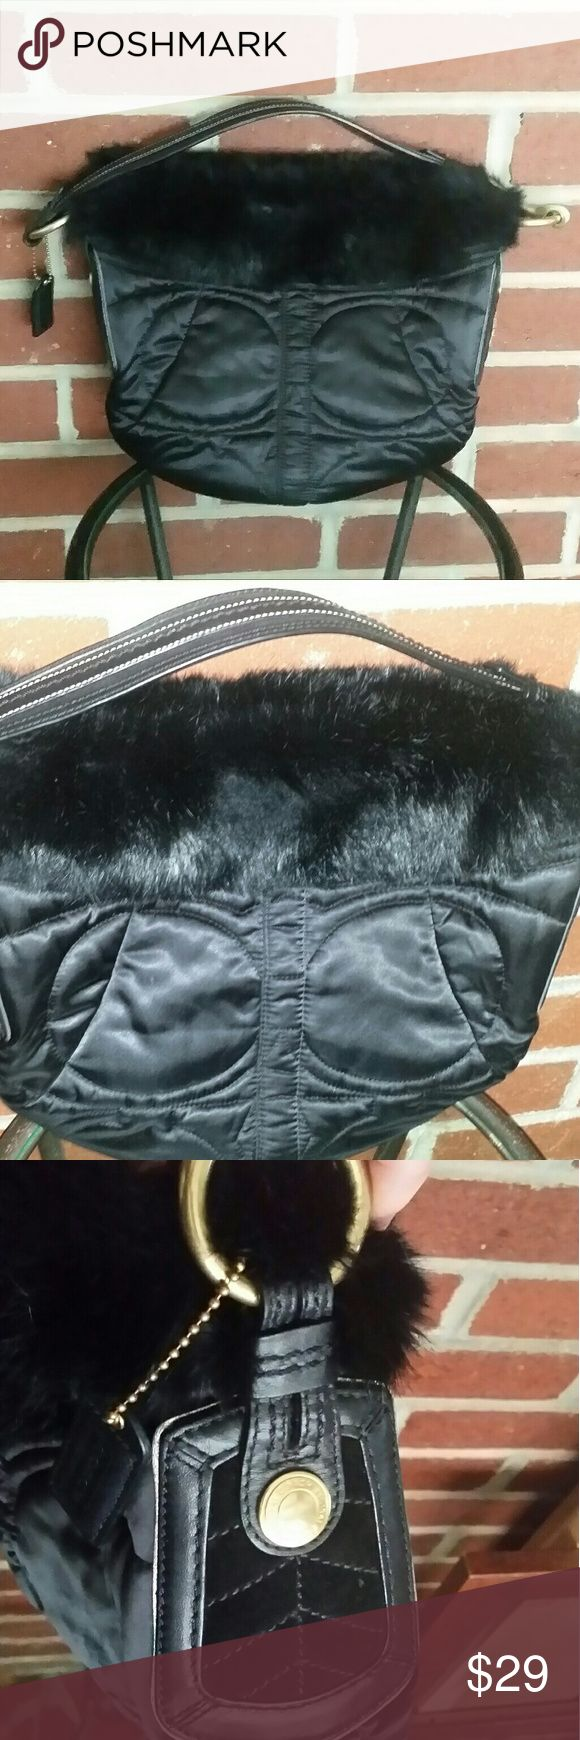 Authentic COACH Small Black Handbag with Fur Cute black quilted satin handbag with for. Used but in near perfect condition. Bag #G05K-3586. Super soft! Coach Bags Shoulder Bags